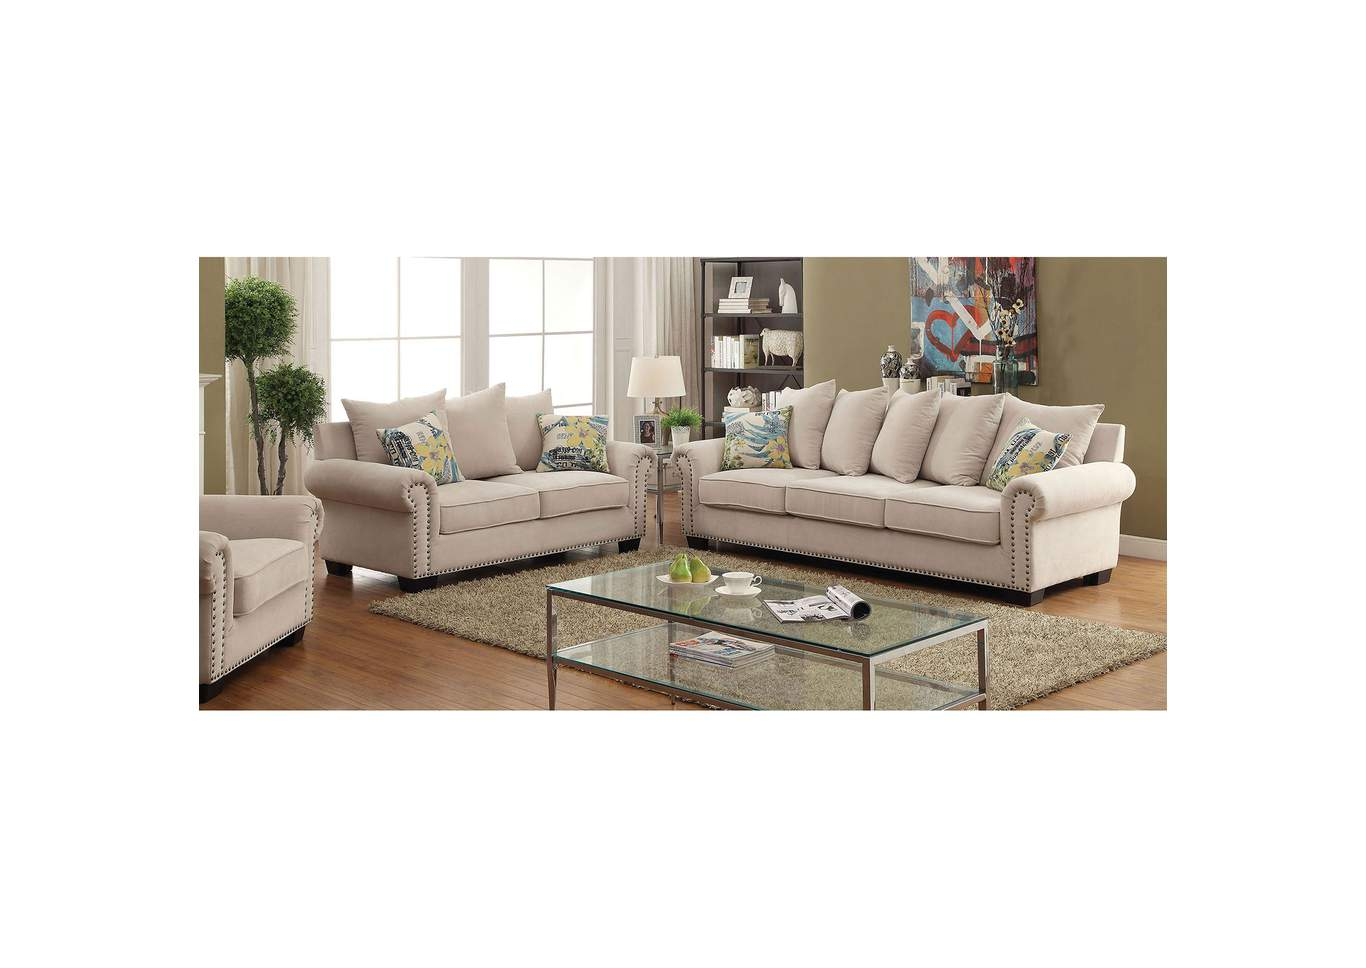 lr sets room knightsbridge luv pc cindy home ivory cart loveseat living primary crawford product